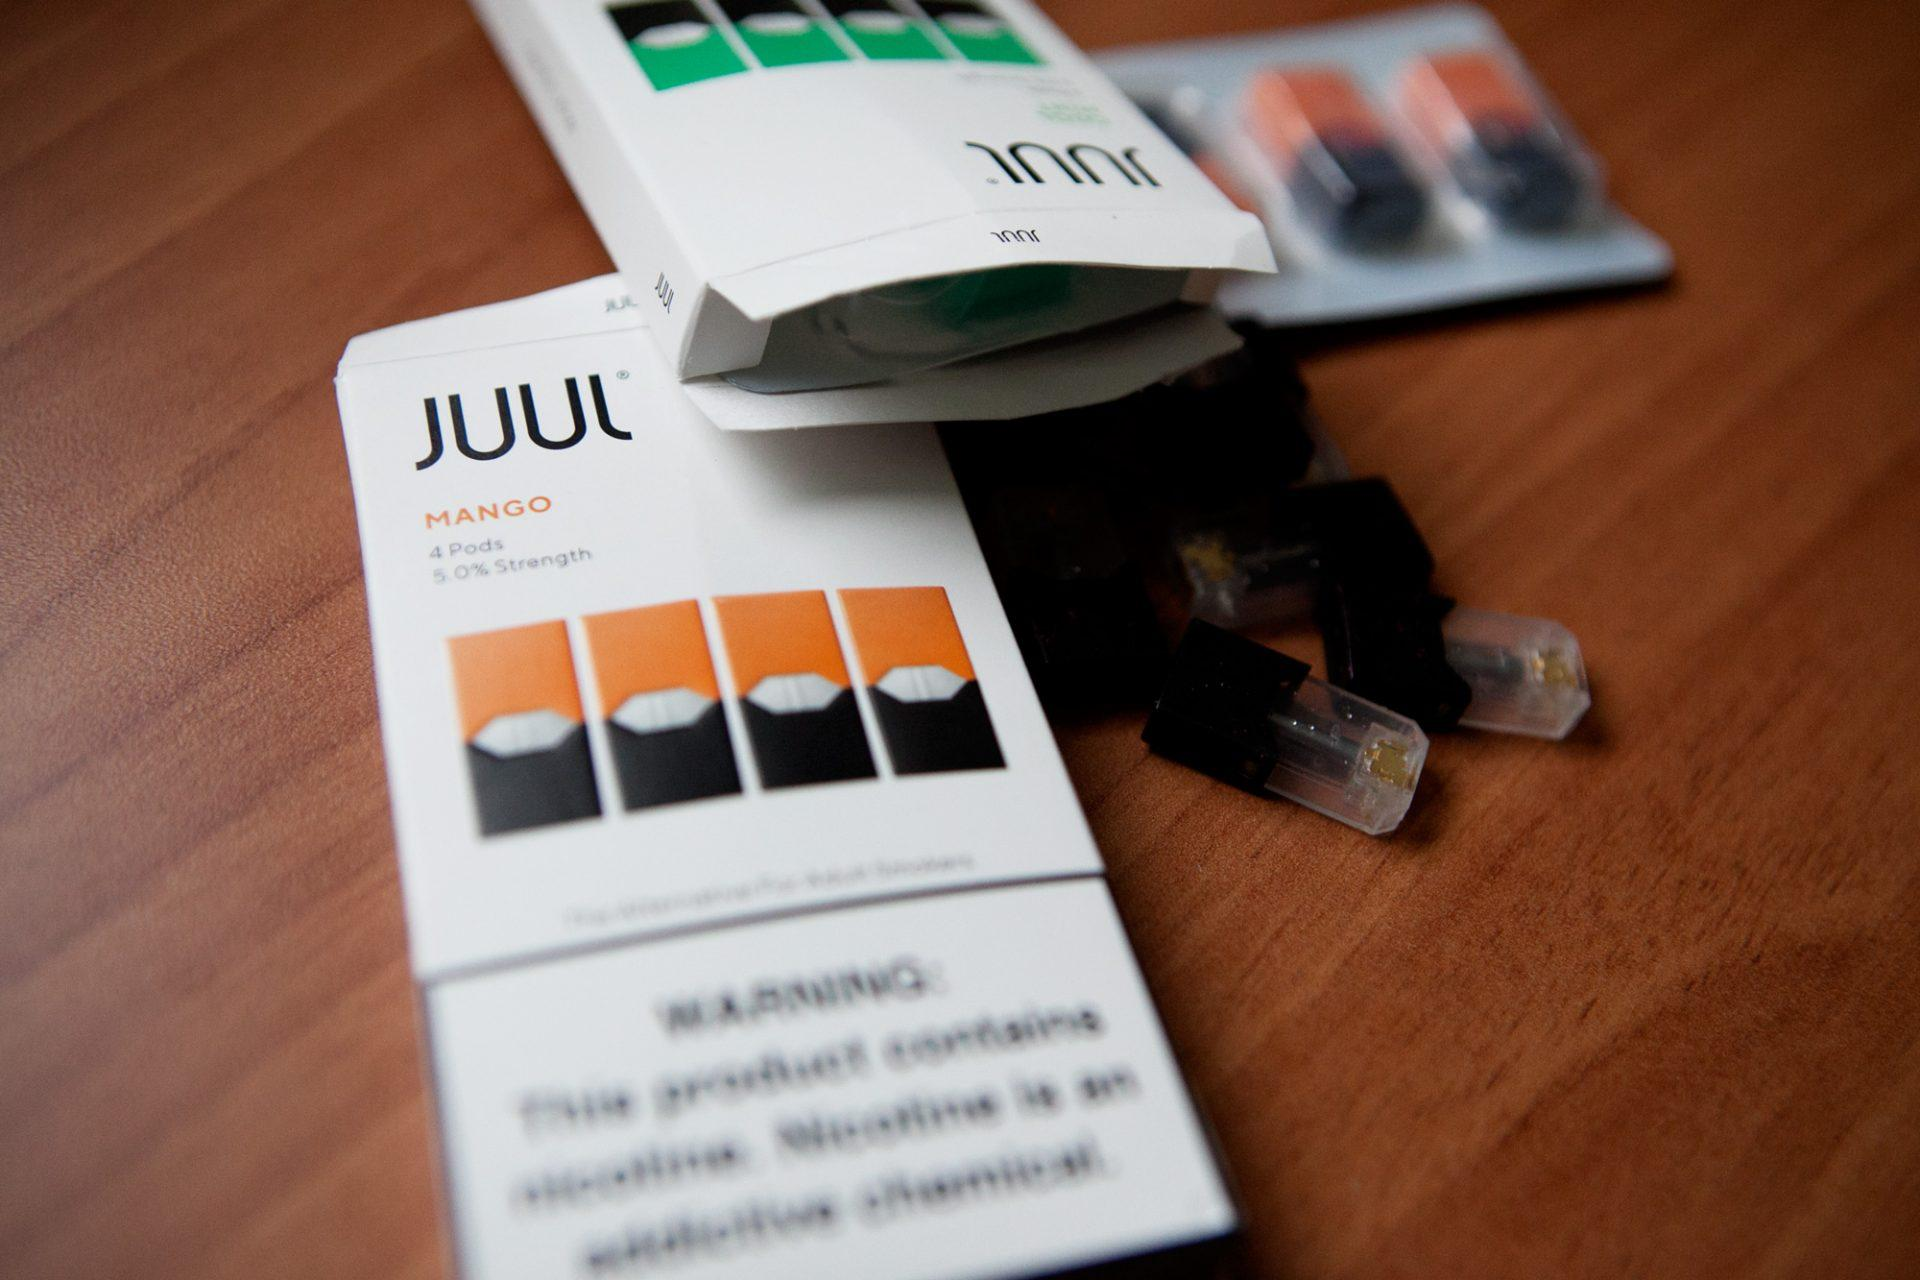 OPINION: E-cigarettes more useful as over-the-counter drugs